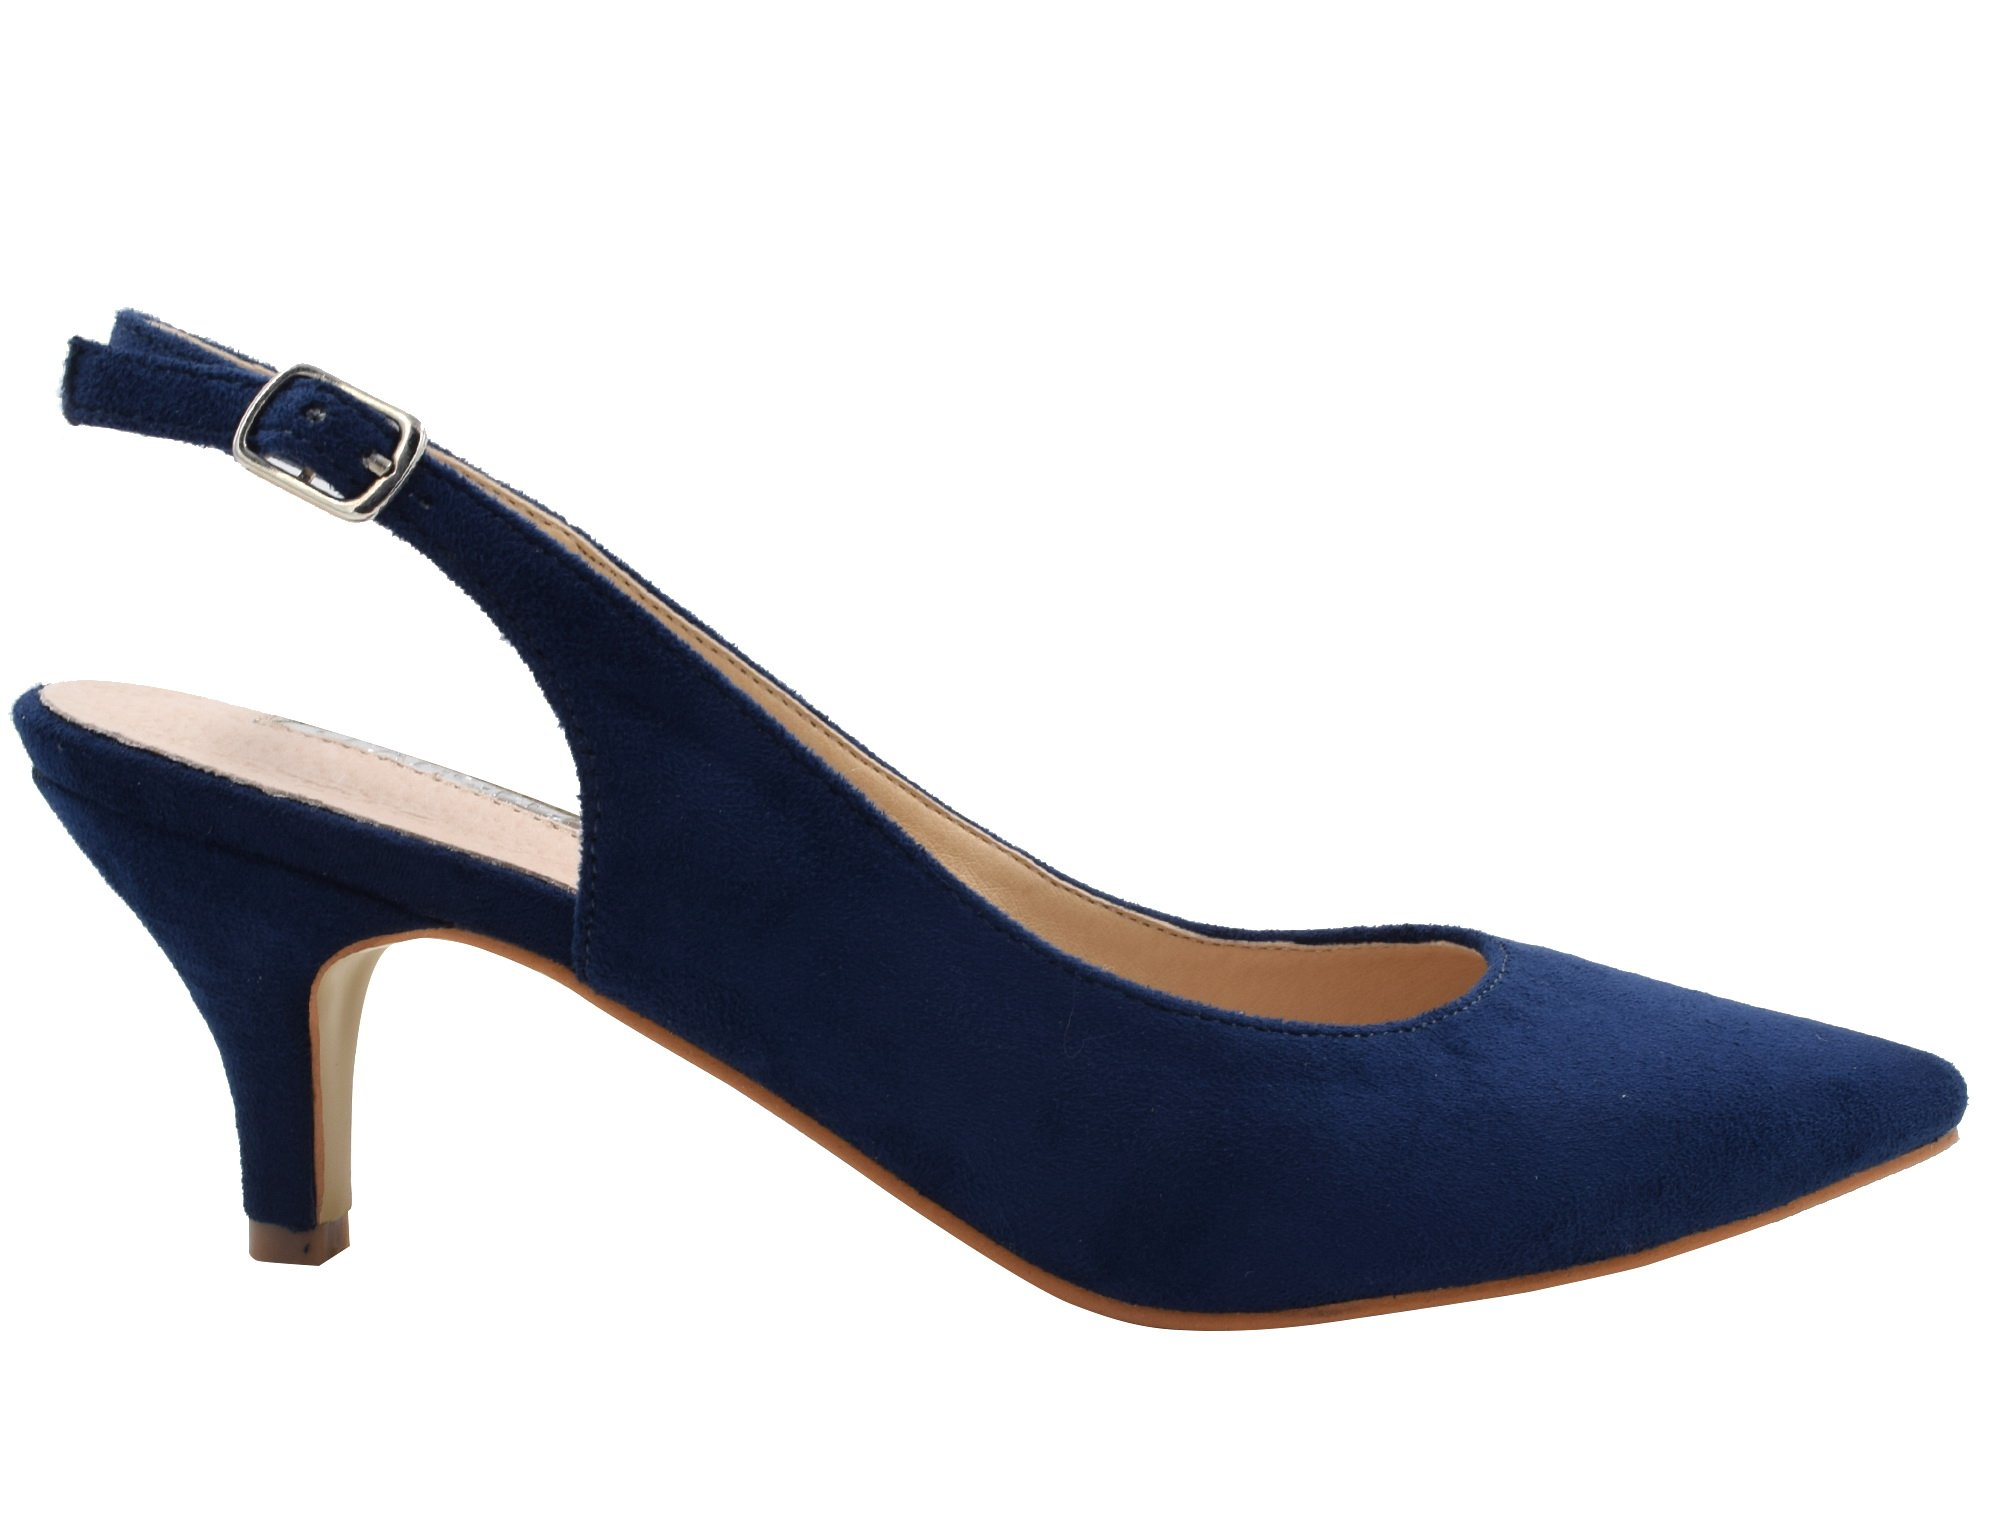 Greatonu Womens Blue Formal Classic Kitten Heels Pumps Shoes Size 9 by Greatonu (Image #2)